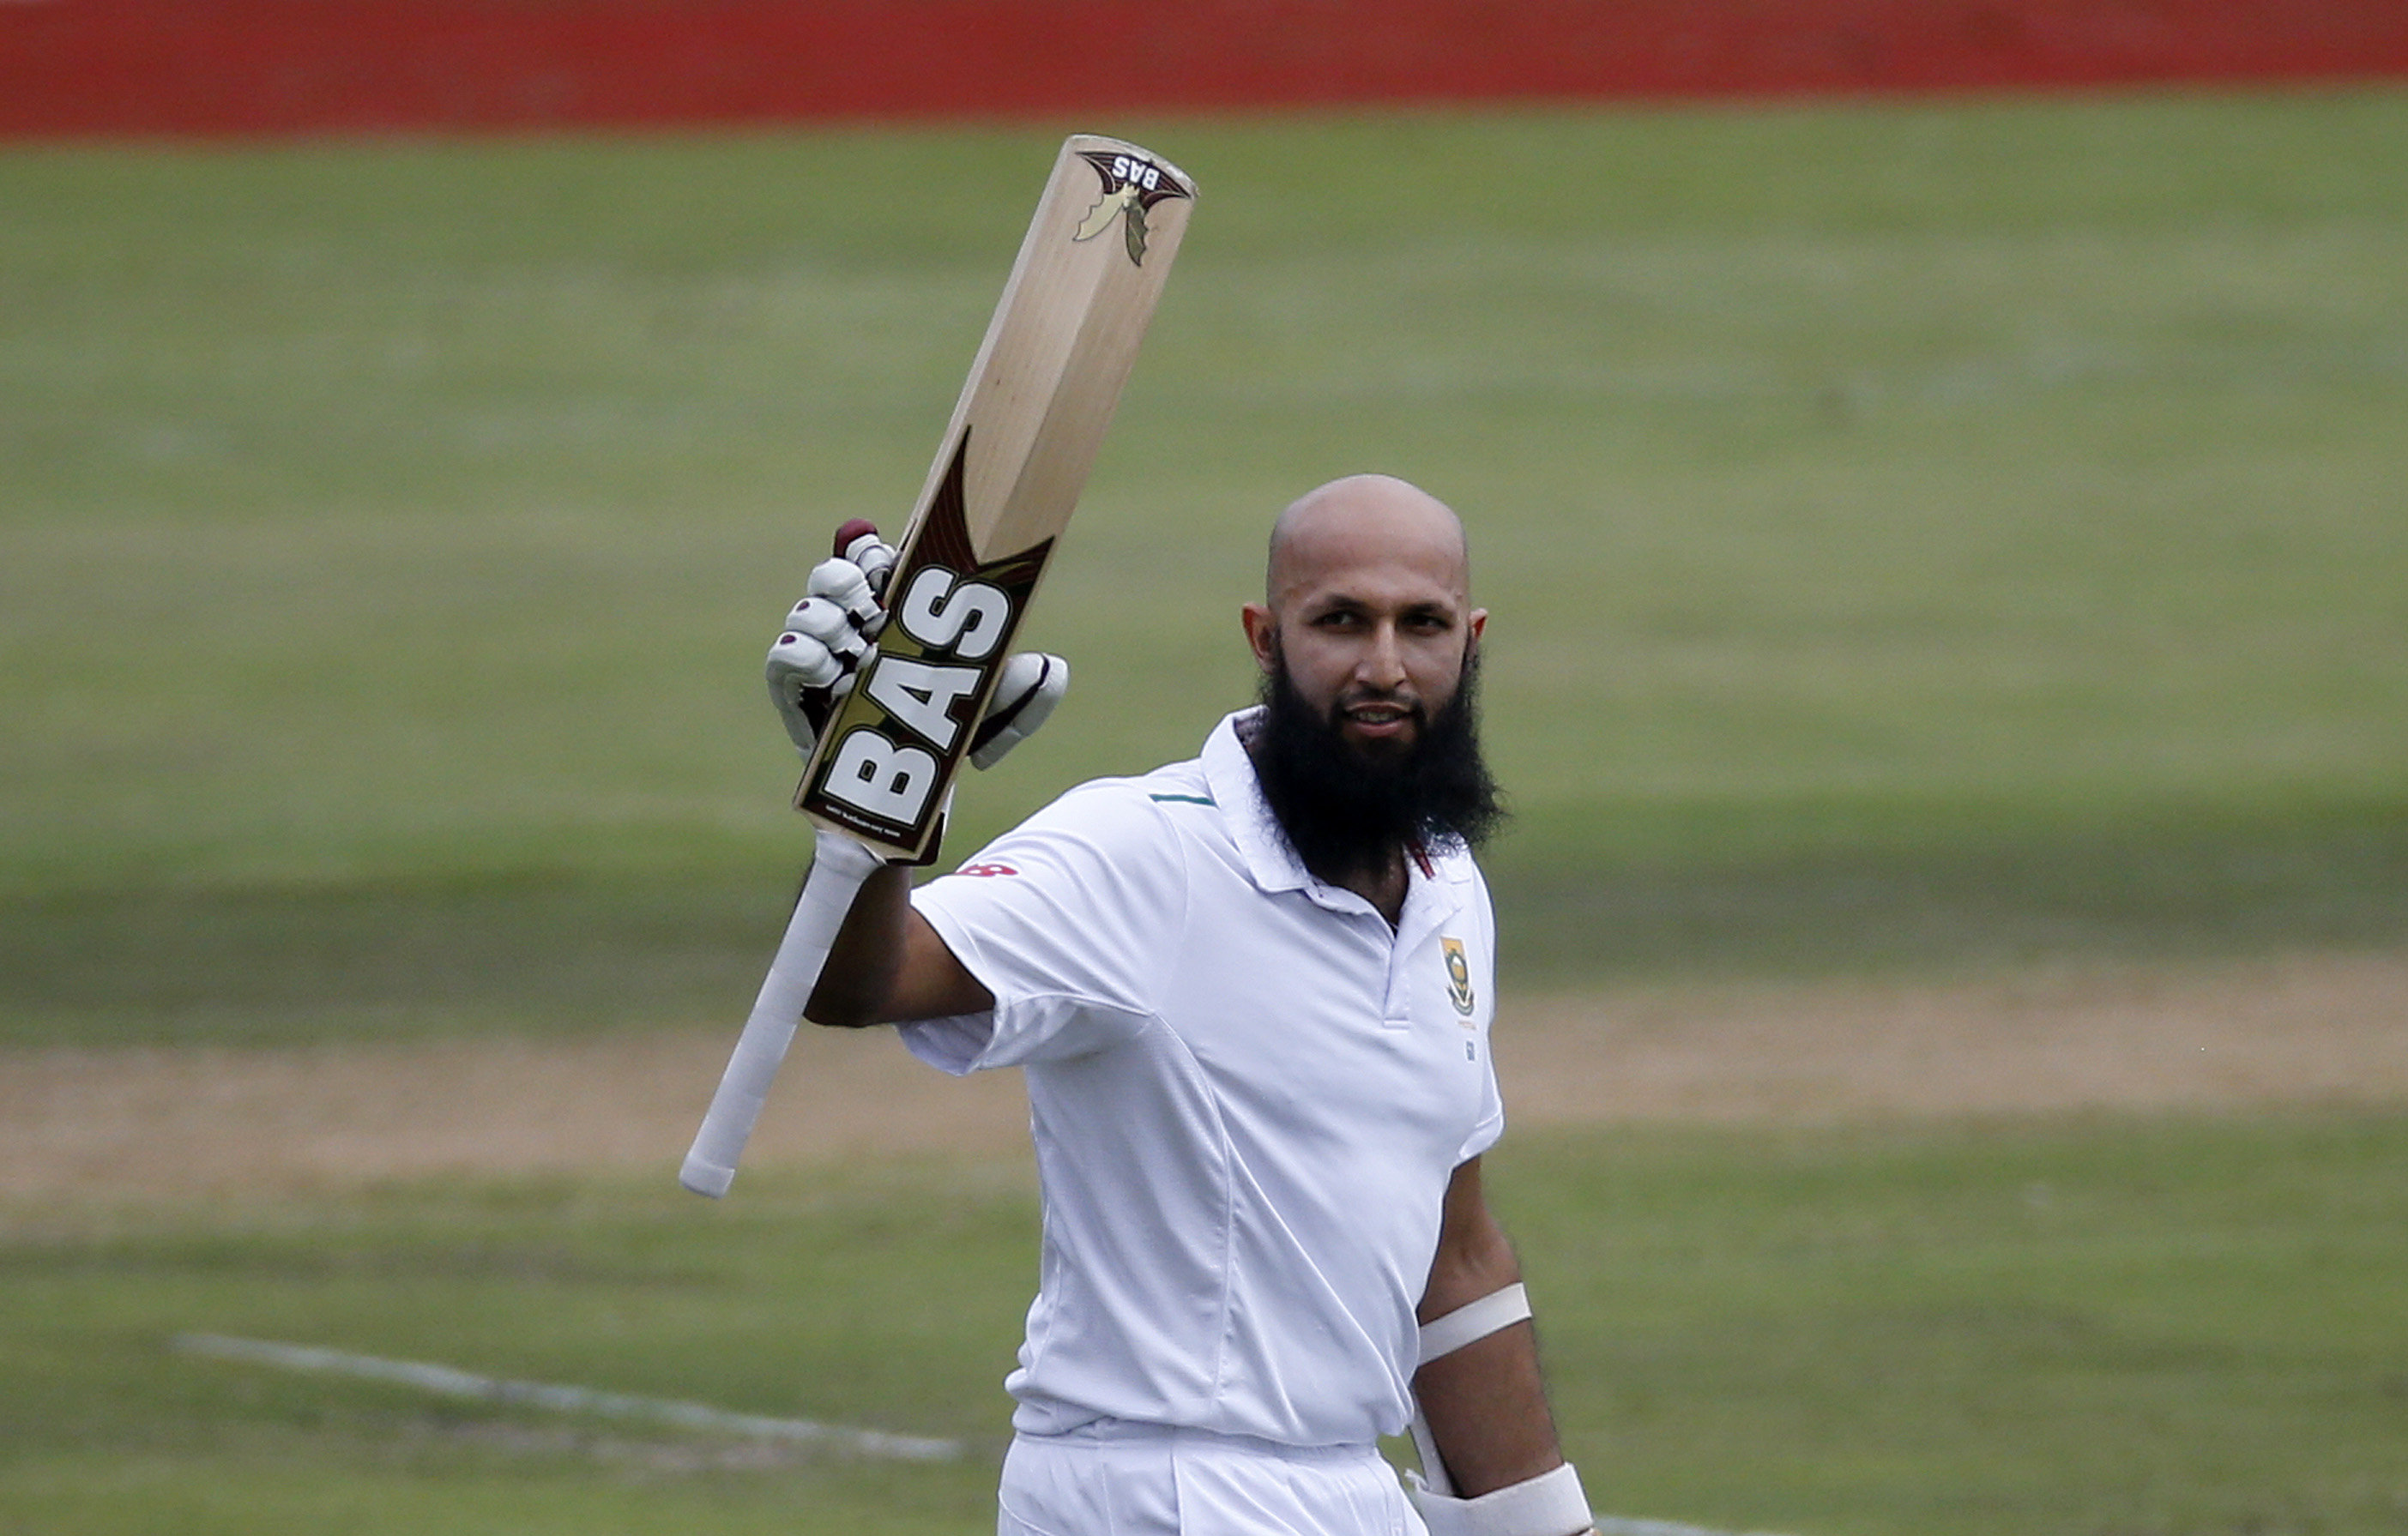 Centurion is also a favourite of Amla, who is going through a difficult patch with the bat (Image: Reuters)